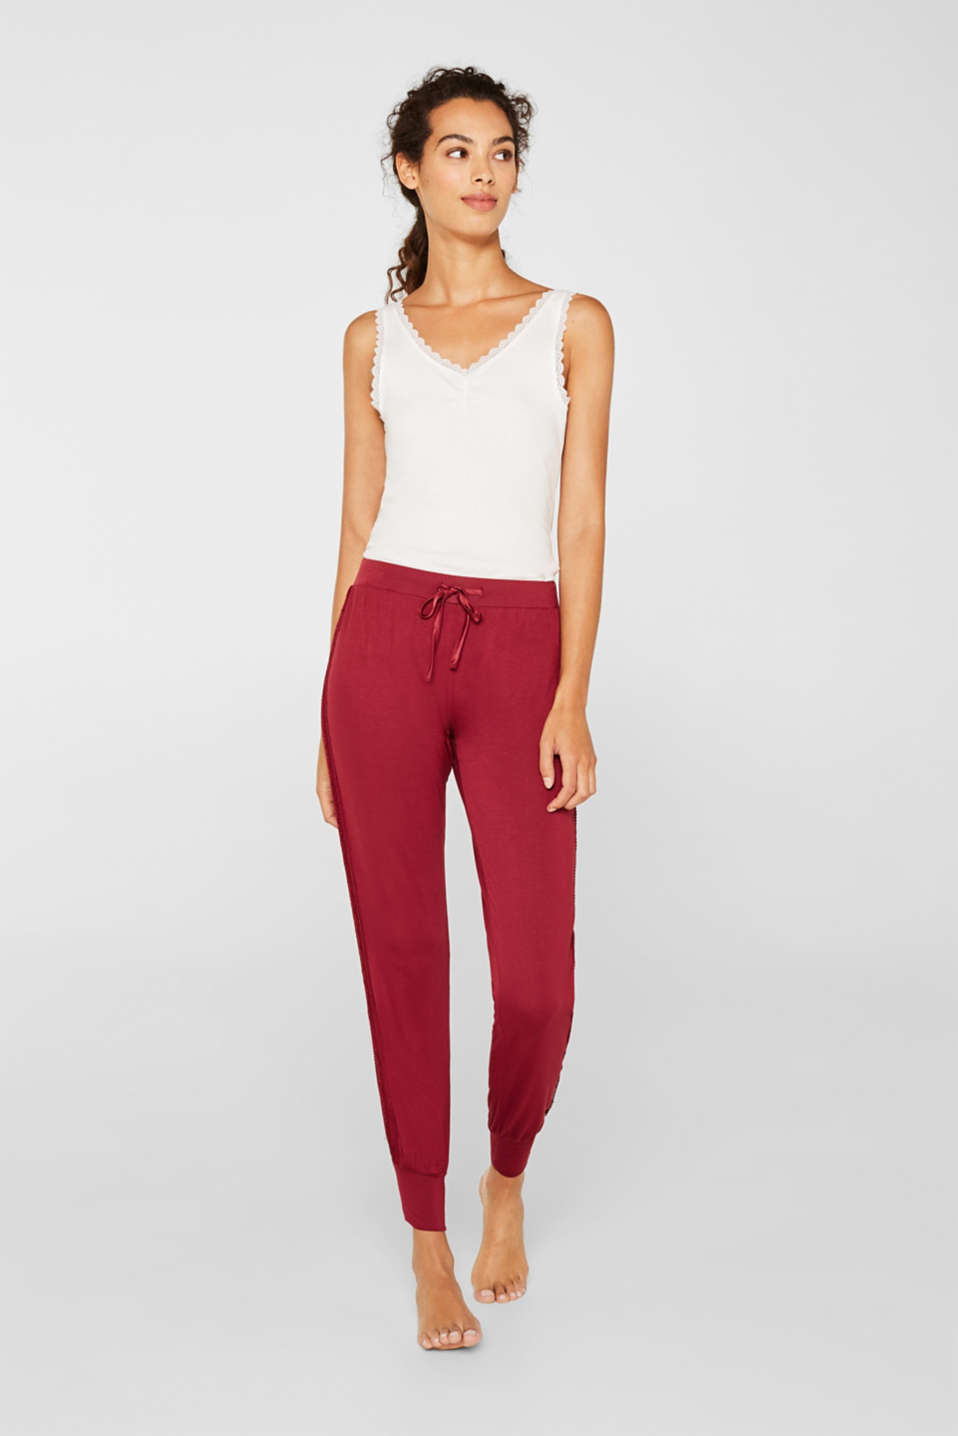 Esprit - Stretch jersey trousers with lace